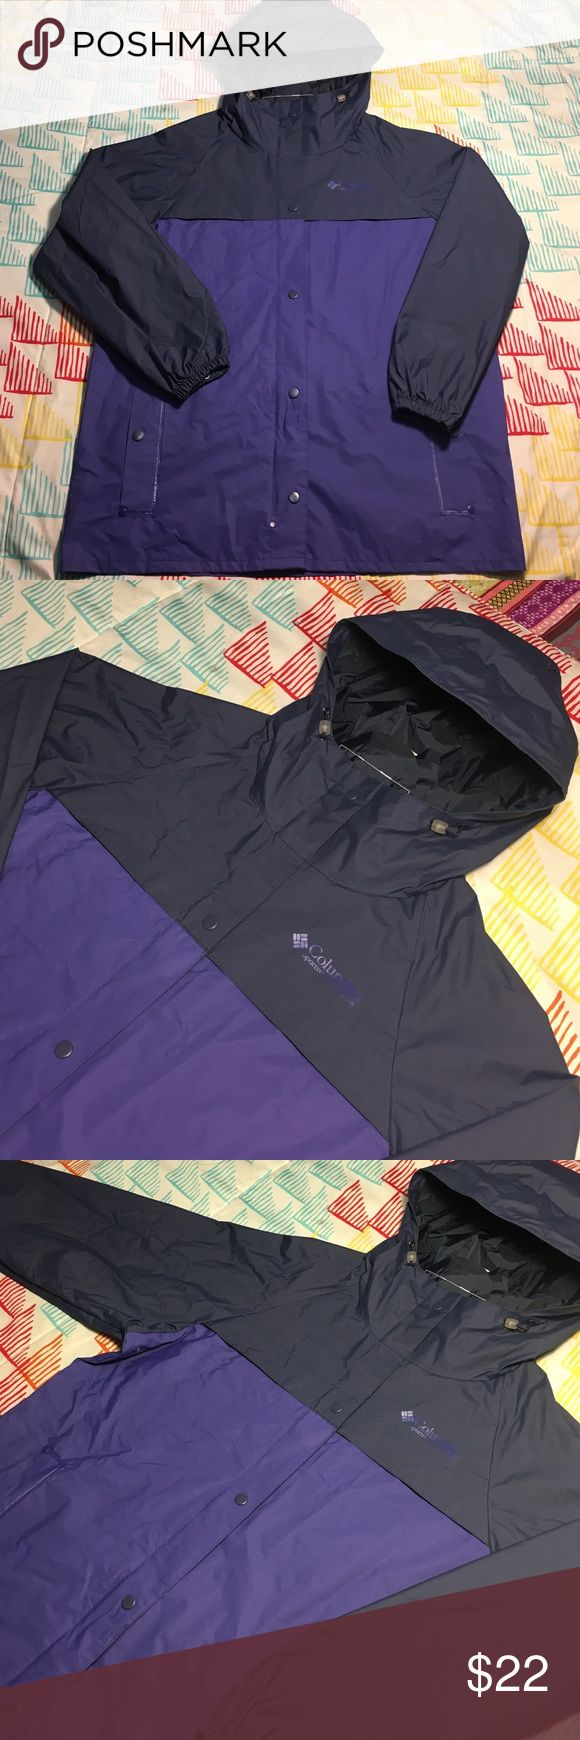 Columbia Sportswear Zip Up Rain Style Jacket Size Medium - Condition 9.9/10 Columbia Jackets & Coats